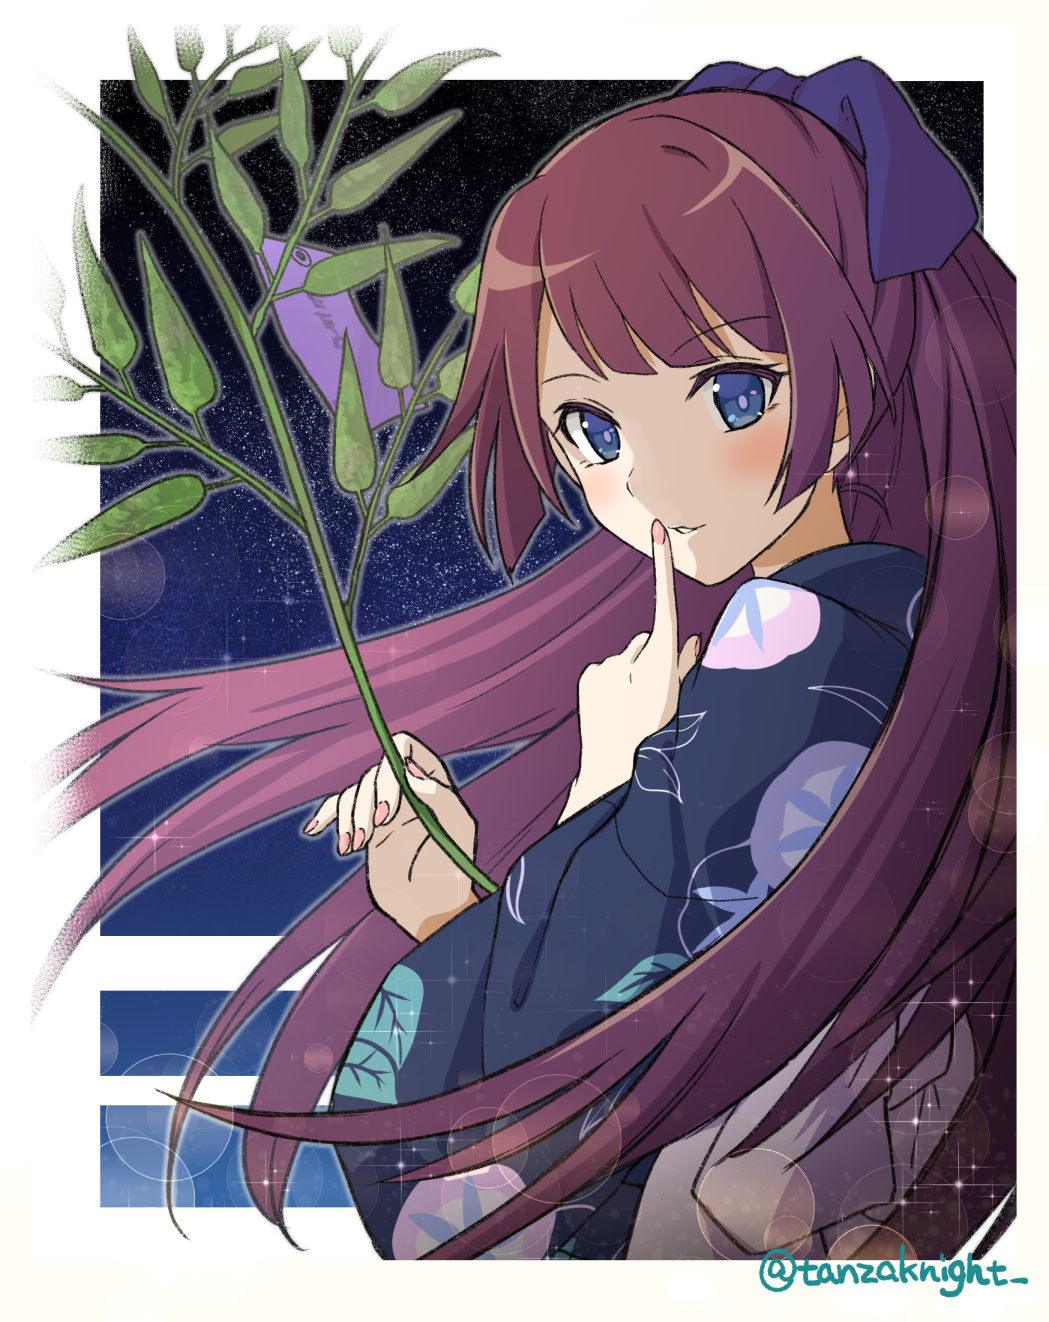 1girl bakemonogatari bangs blue_eyes blue_kimono blush border bow commentary_request finger_to_mouth floral_print hair_blowing hair_bow hand_up highres holding holding_plant japanese_clothes kimono lens_flare looking_at_viewer looking_to_the_side monogatari_(series) nail_polish night night_sky parted_lips pink_nails plant_request print_kimono purple_hair senjougahara_hitagi shiny shiny_hair sidelocks sky solo sparkle swept_bangs tanzaku_kishi twitter_username upper_body violet_eyes white_border wide_sleeves yukata